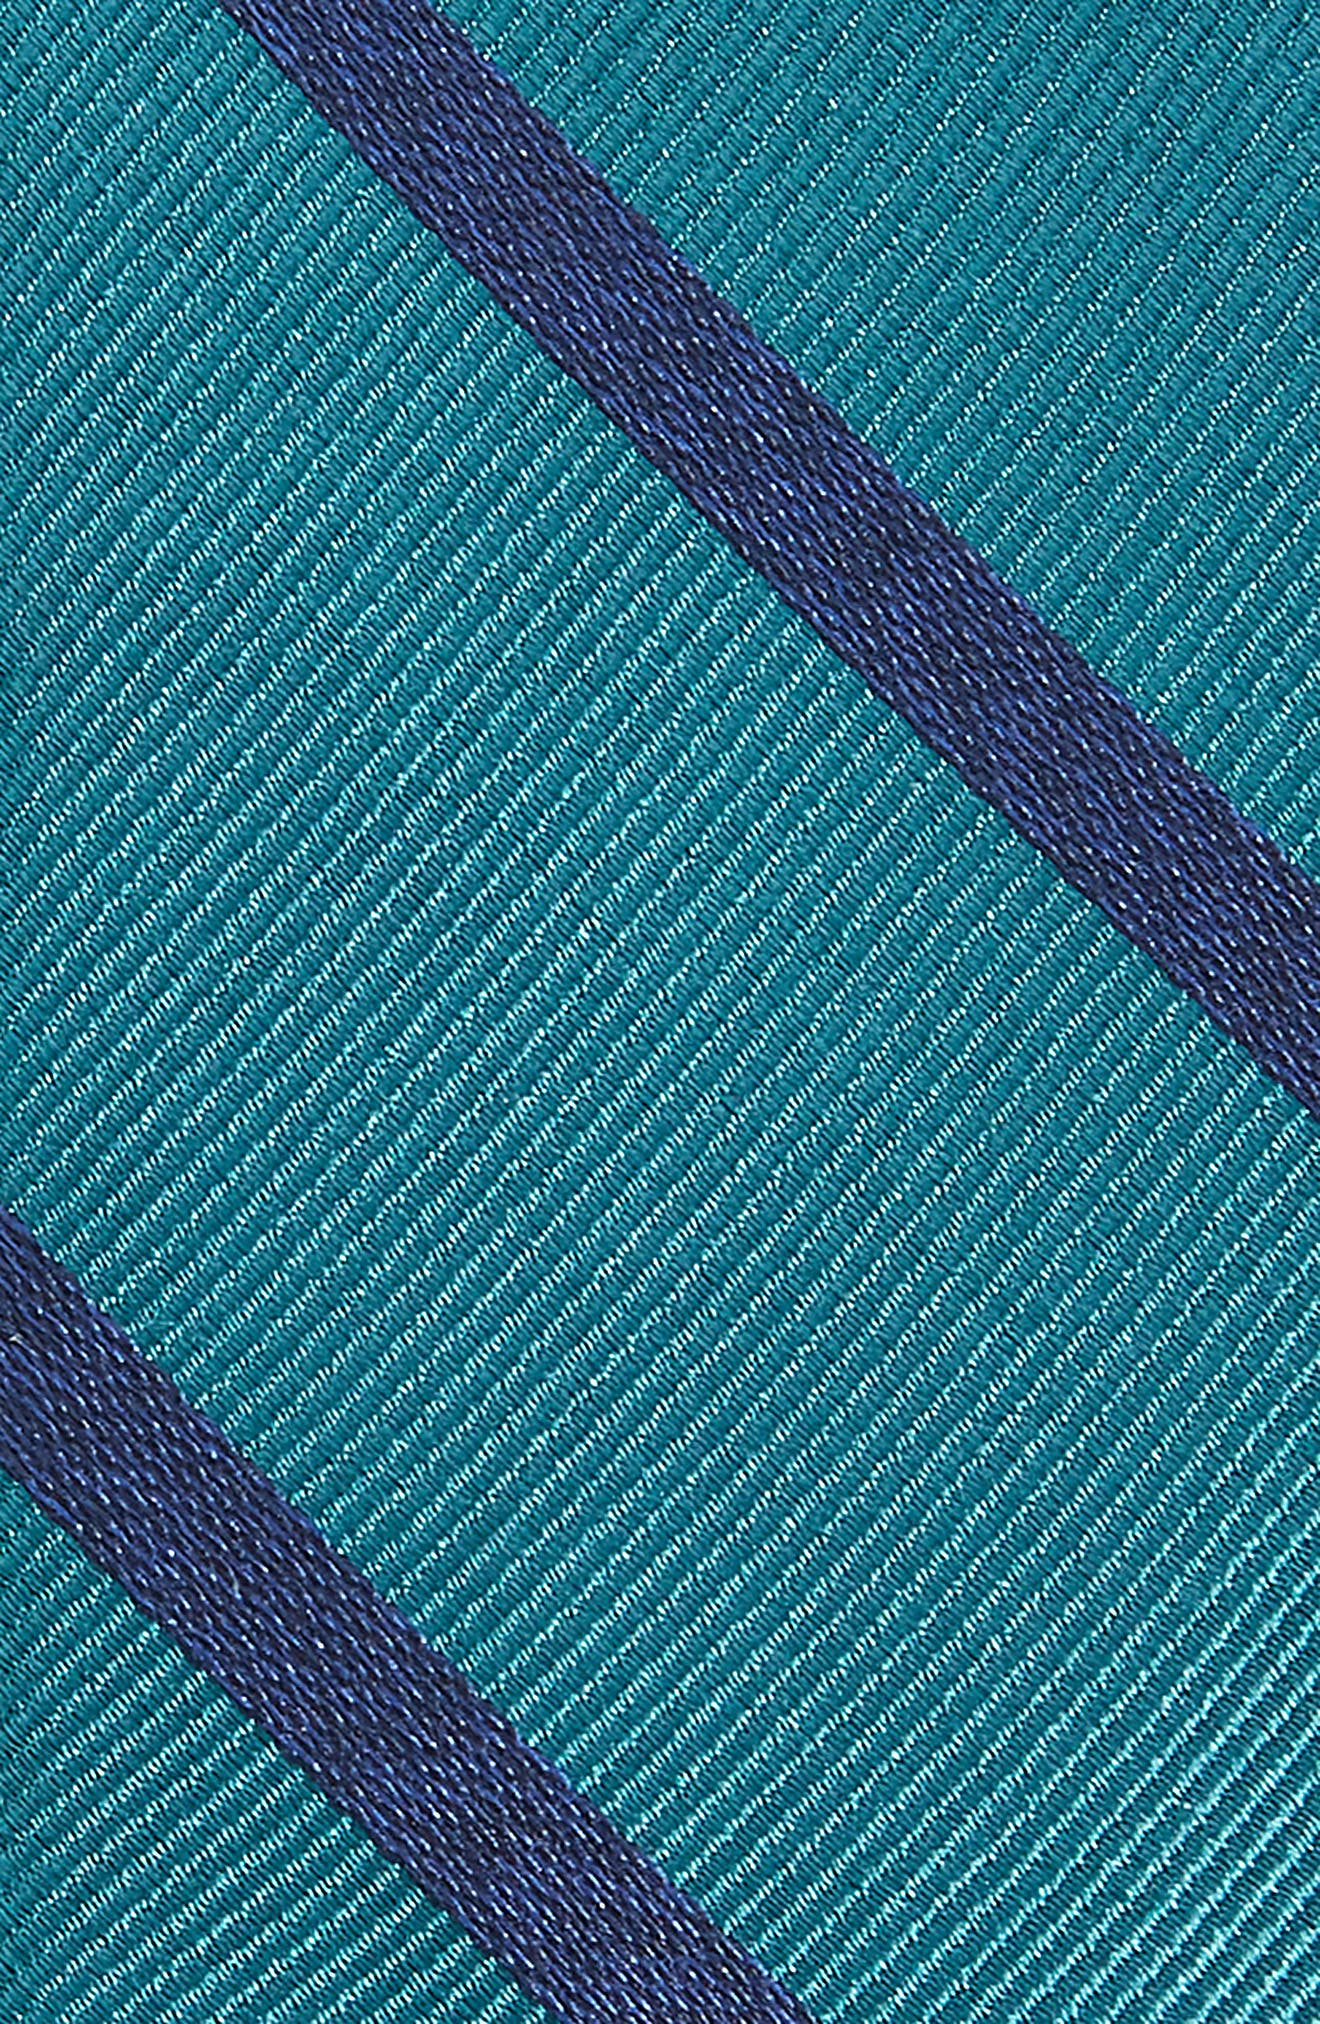 Wheelhouse Stripe Silk Skinny Tie,                             Alternate thumbnail 2, color,                             Teal